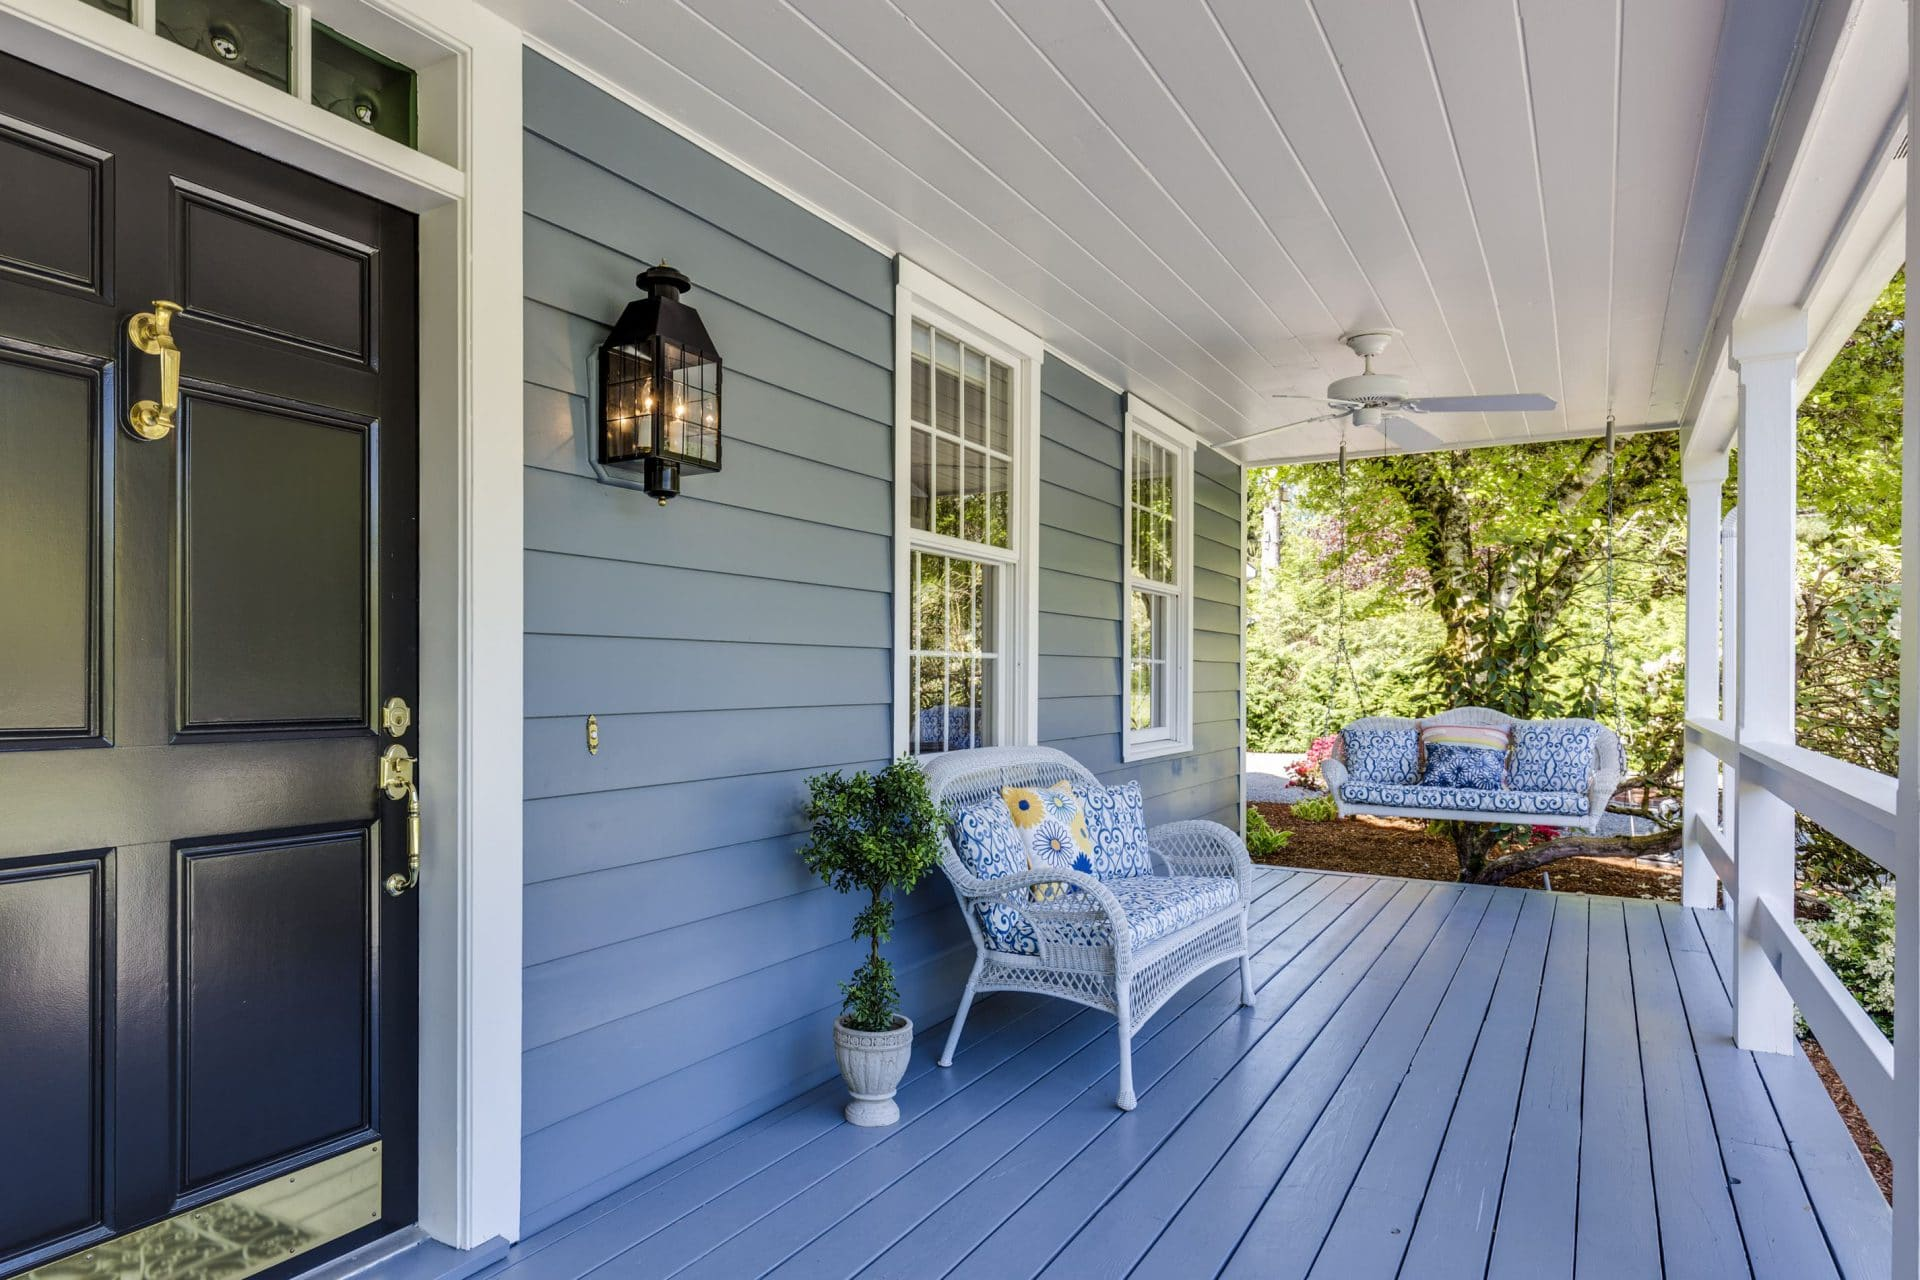 Front porch photo from local home inspection in Charlotte